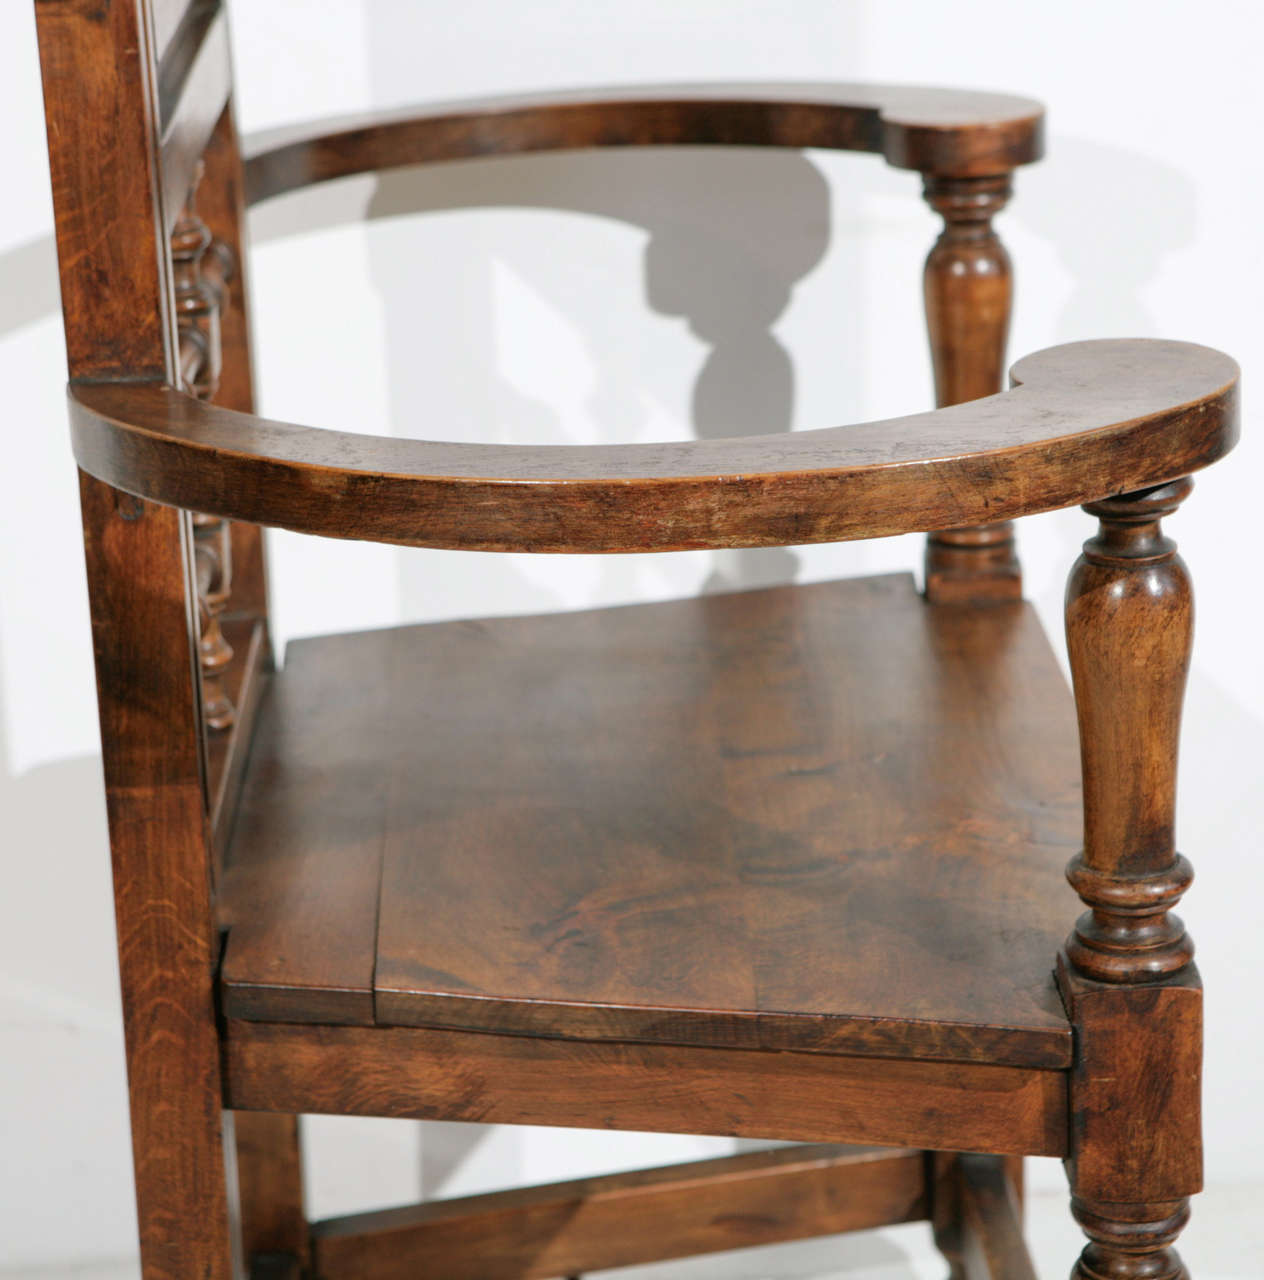 High Back Pine Throne Dining Arm Chair at 1stdibs : MG4513 from www.1stdibs.com size 1264 x 1280 jpeg 110kB